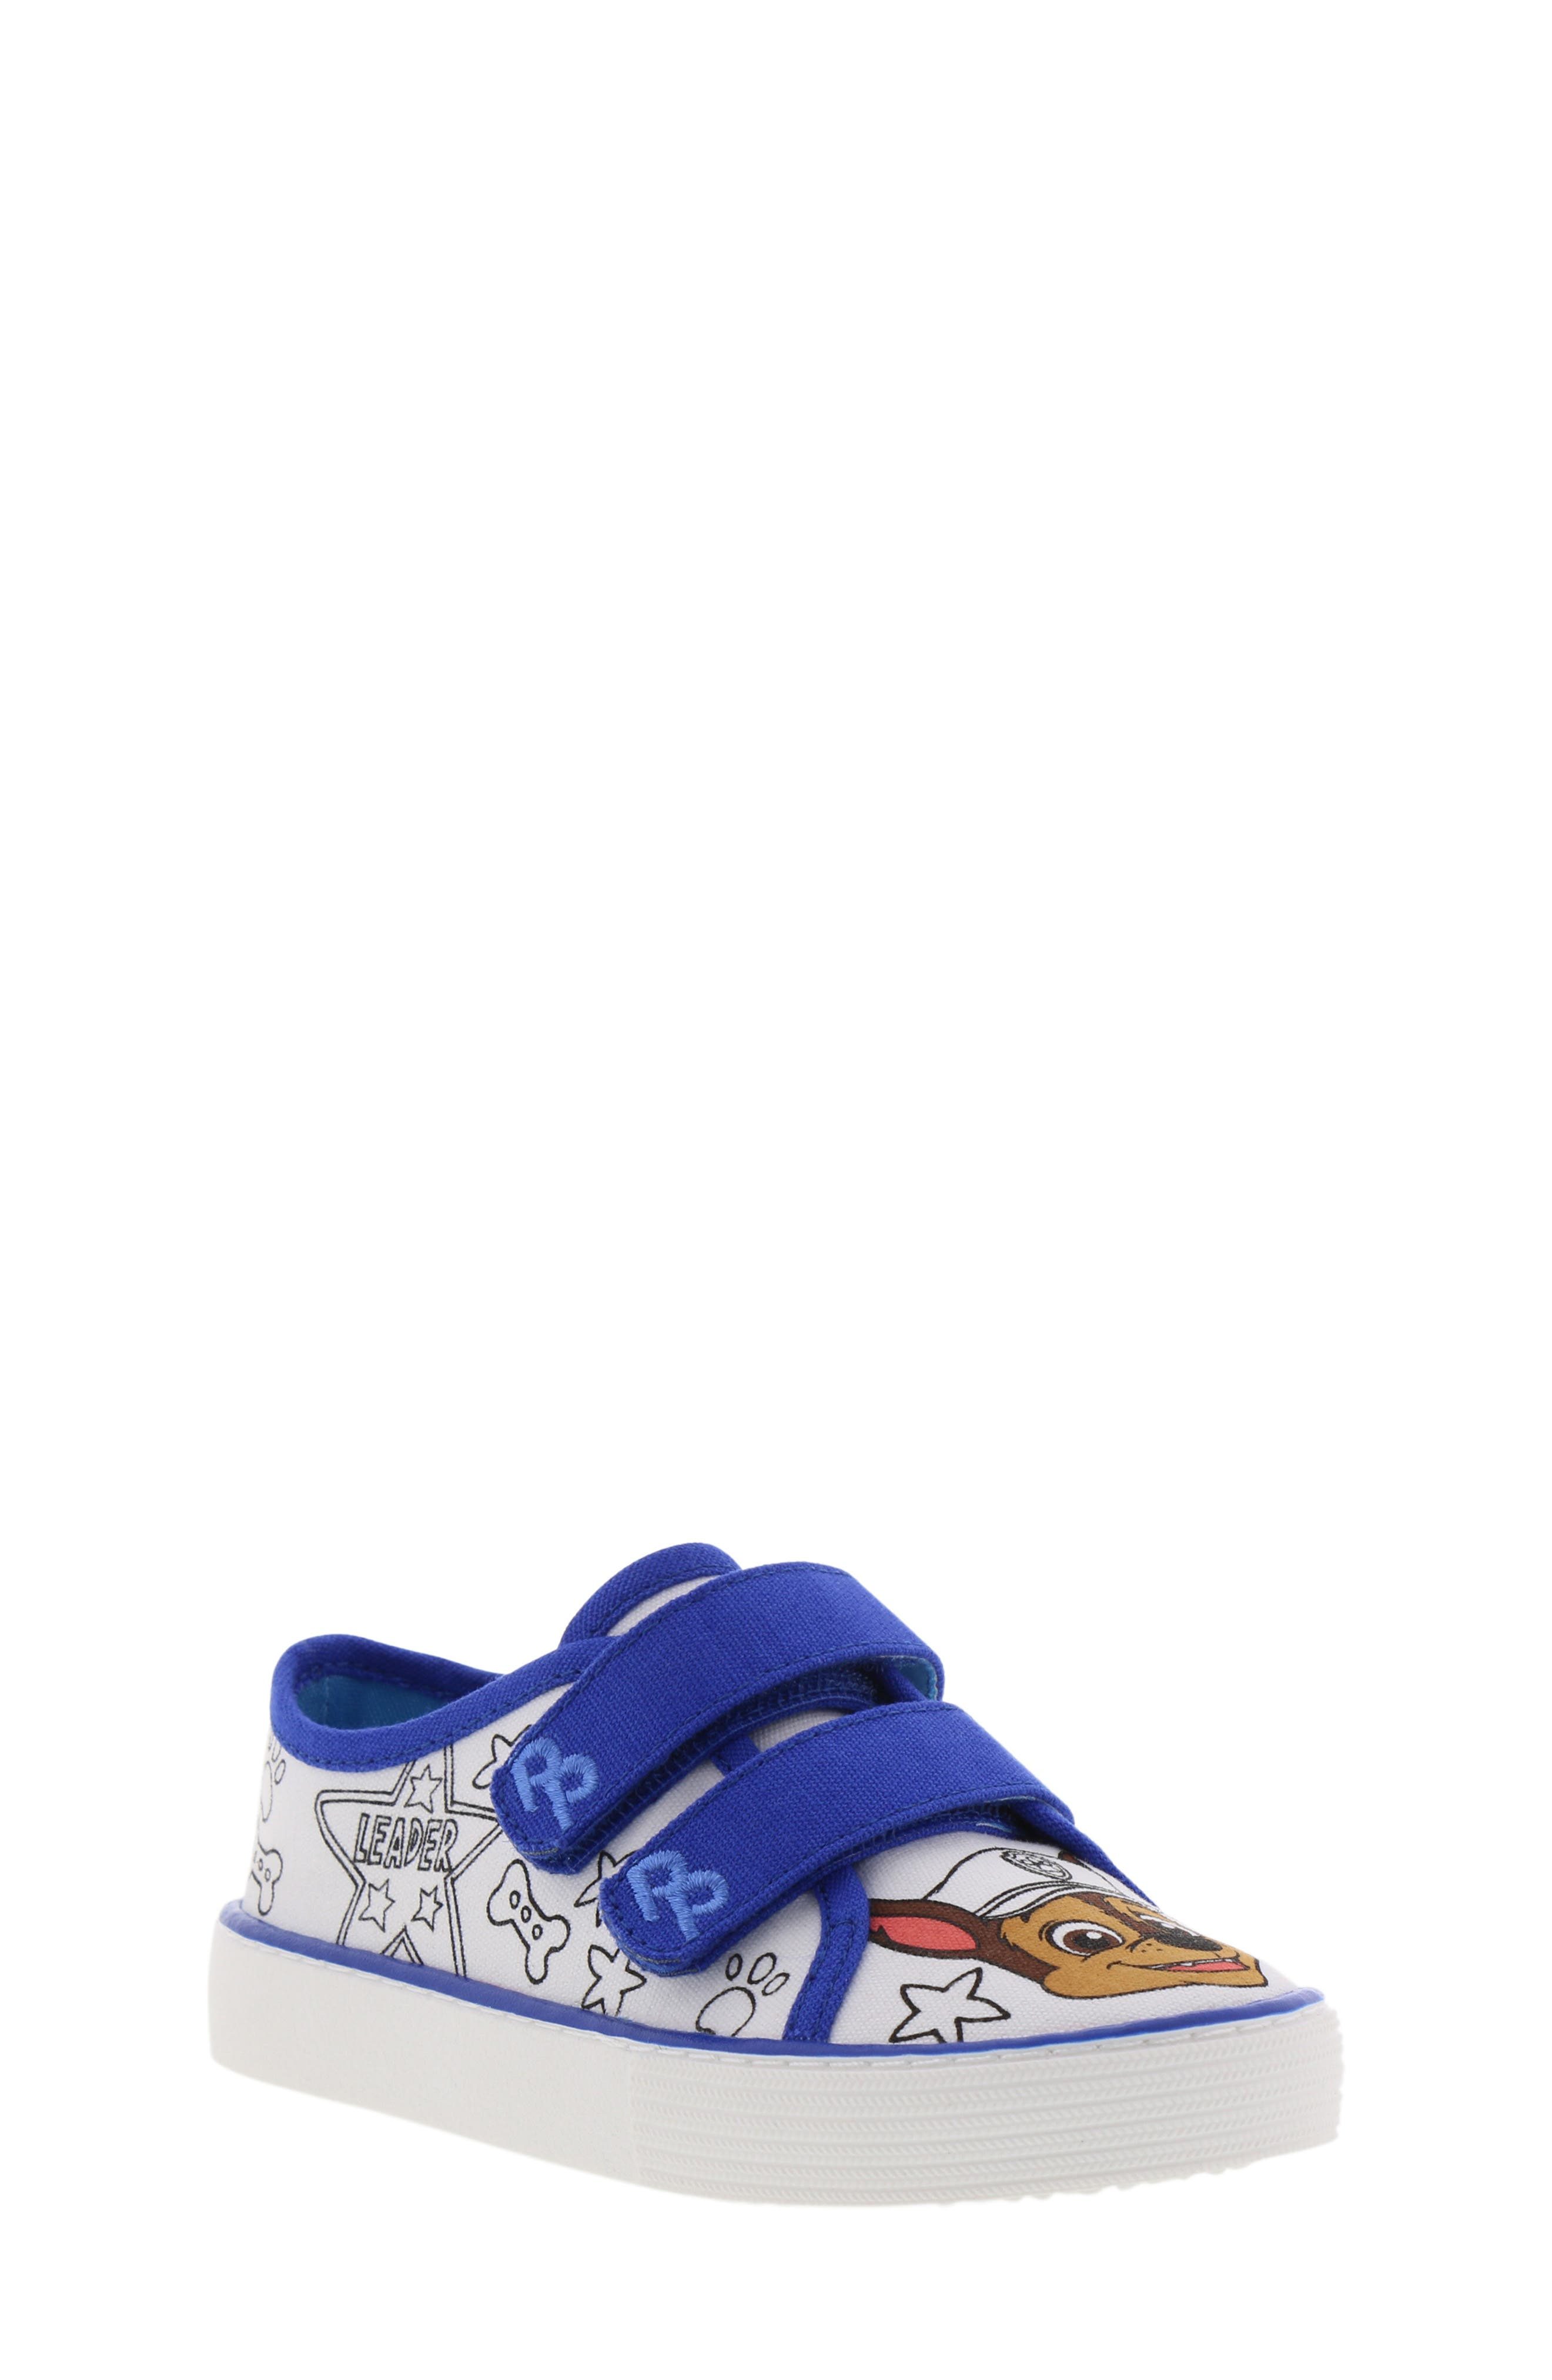 Chase Color DIY Sneaker,                             Main thumbnail 1, color,                             WHITE CHASE BLUE